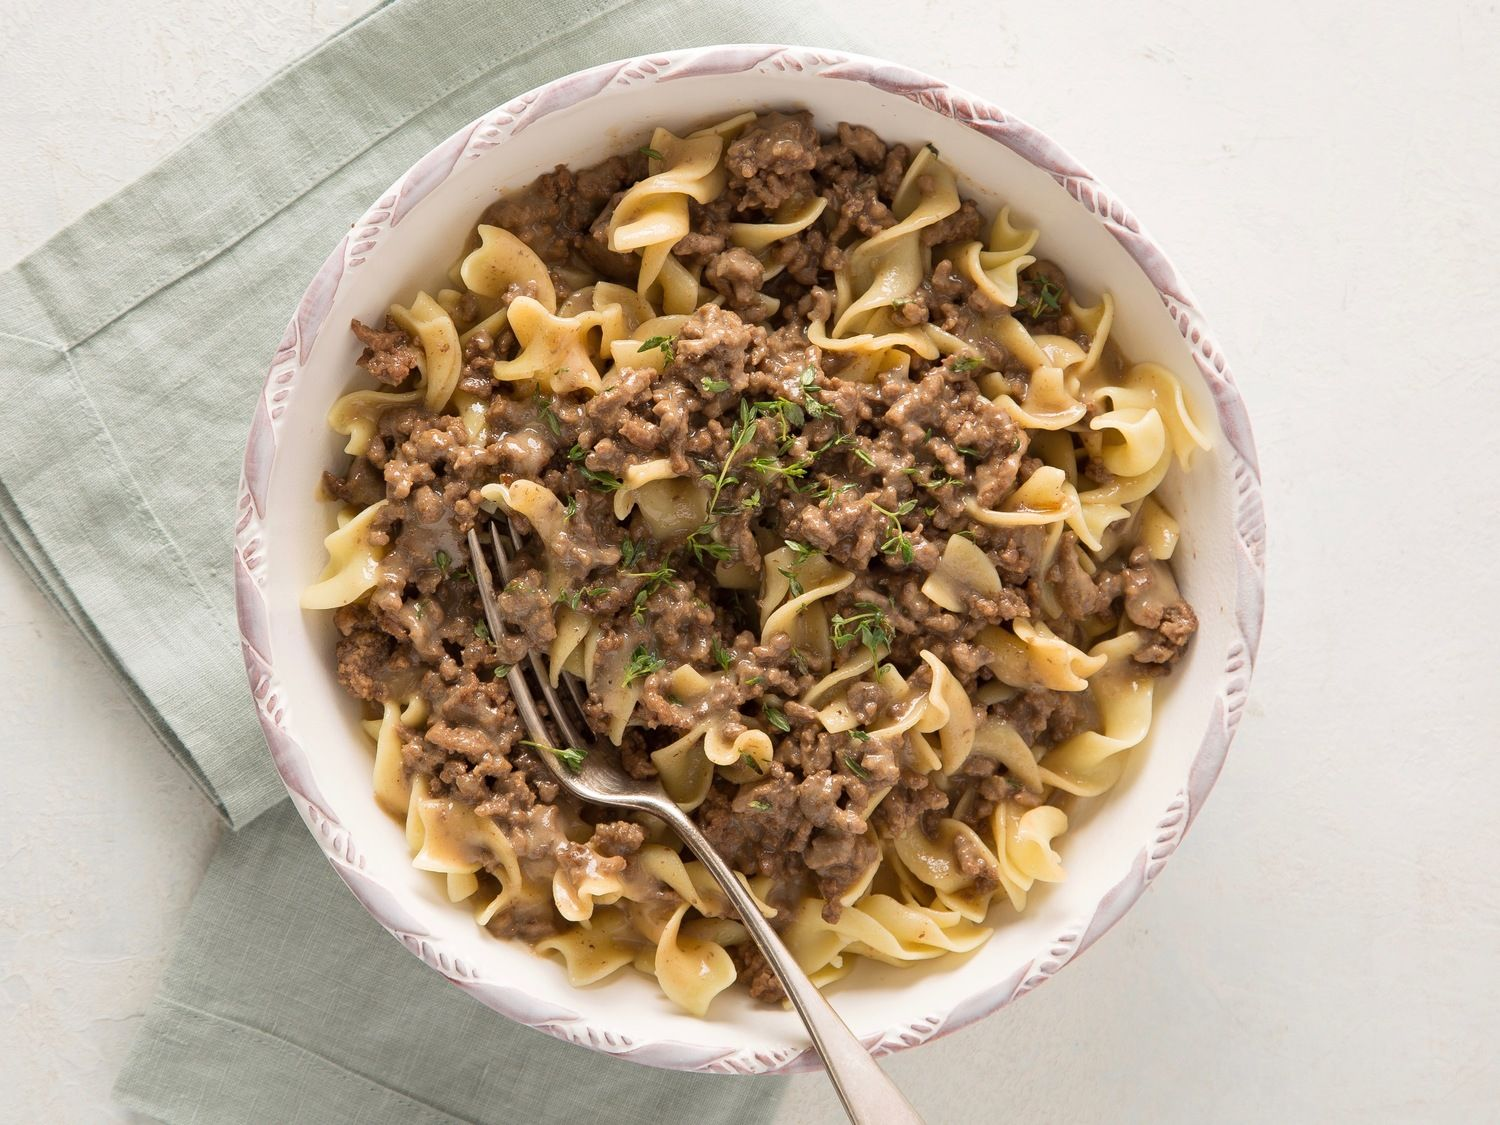 Beef And Gravy Over Egg Noodles Recipe Shaved Beef Recipe Egg Noodles Ground Beef Pasta